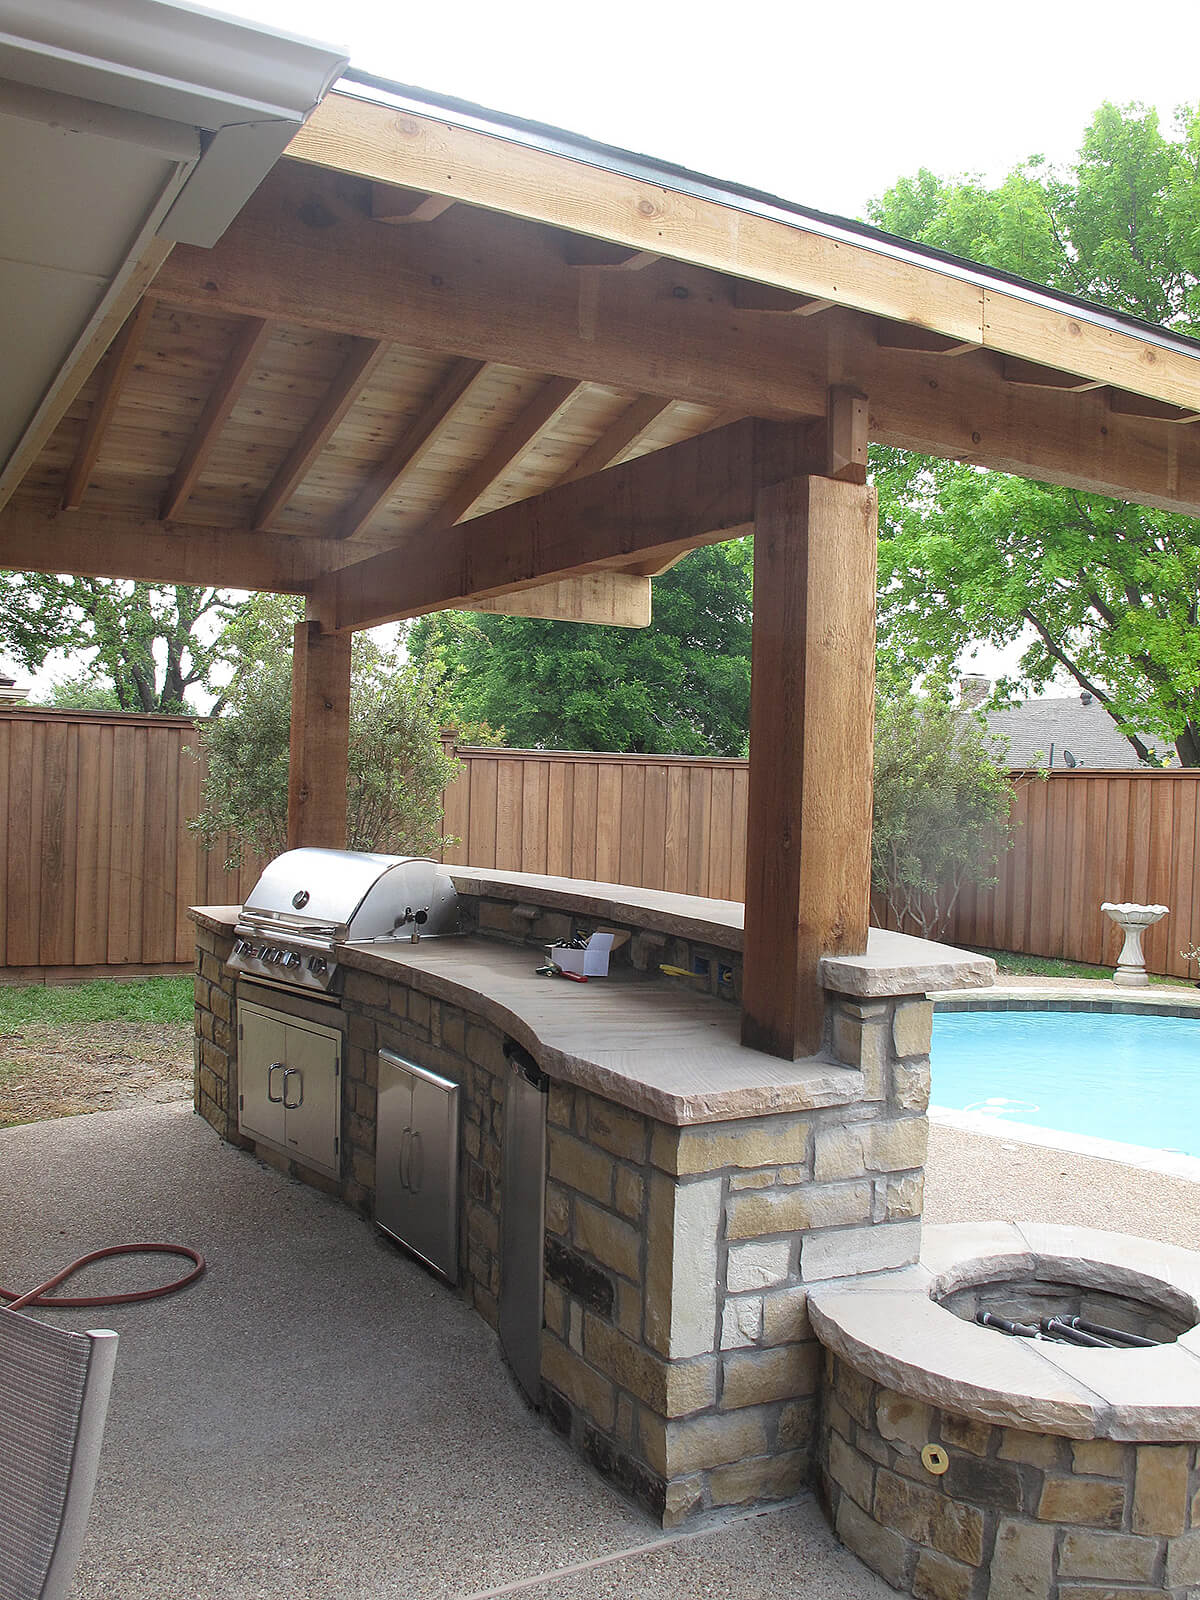 23. Stone Bar With Grill And Fire Pit